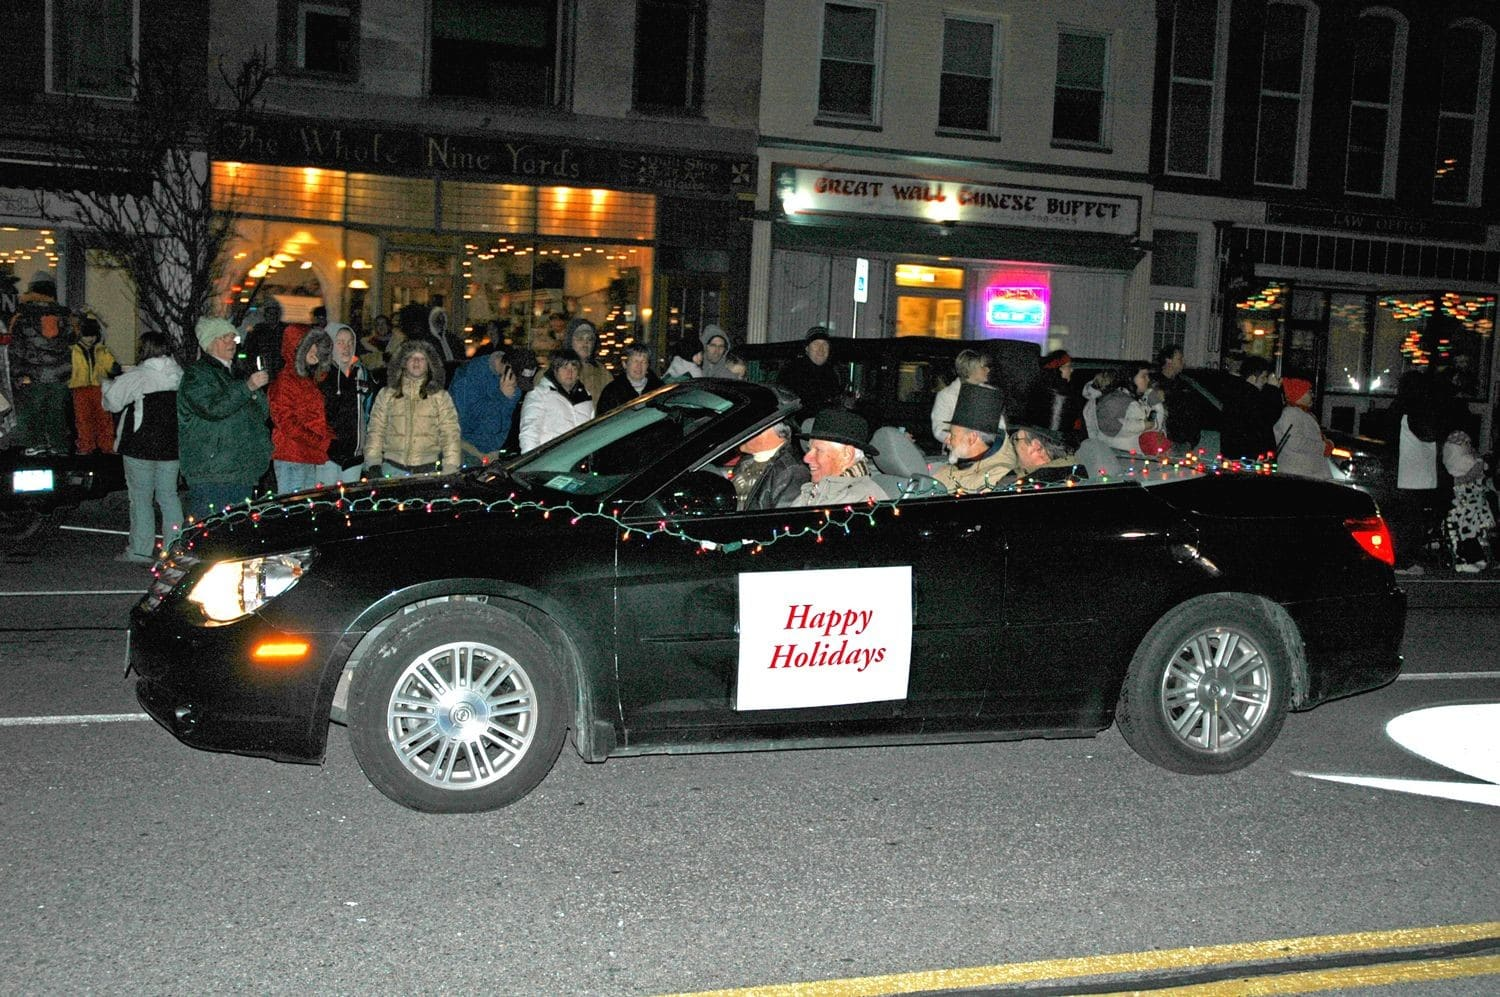 The Medina Sandstone Society participates in the Old Tyme Holiday Parade